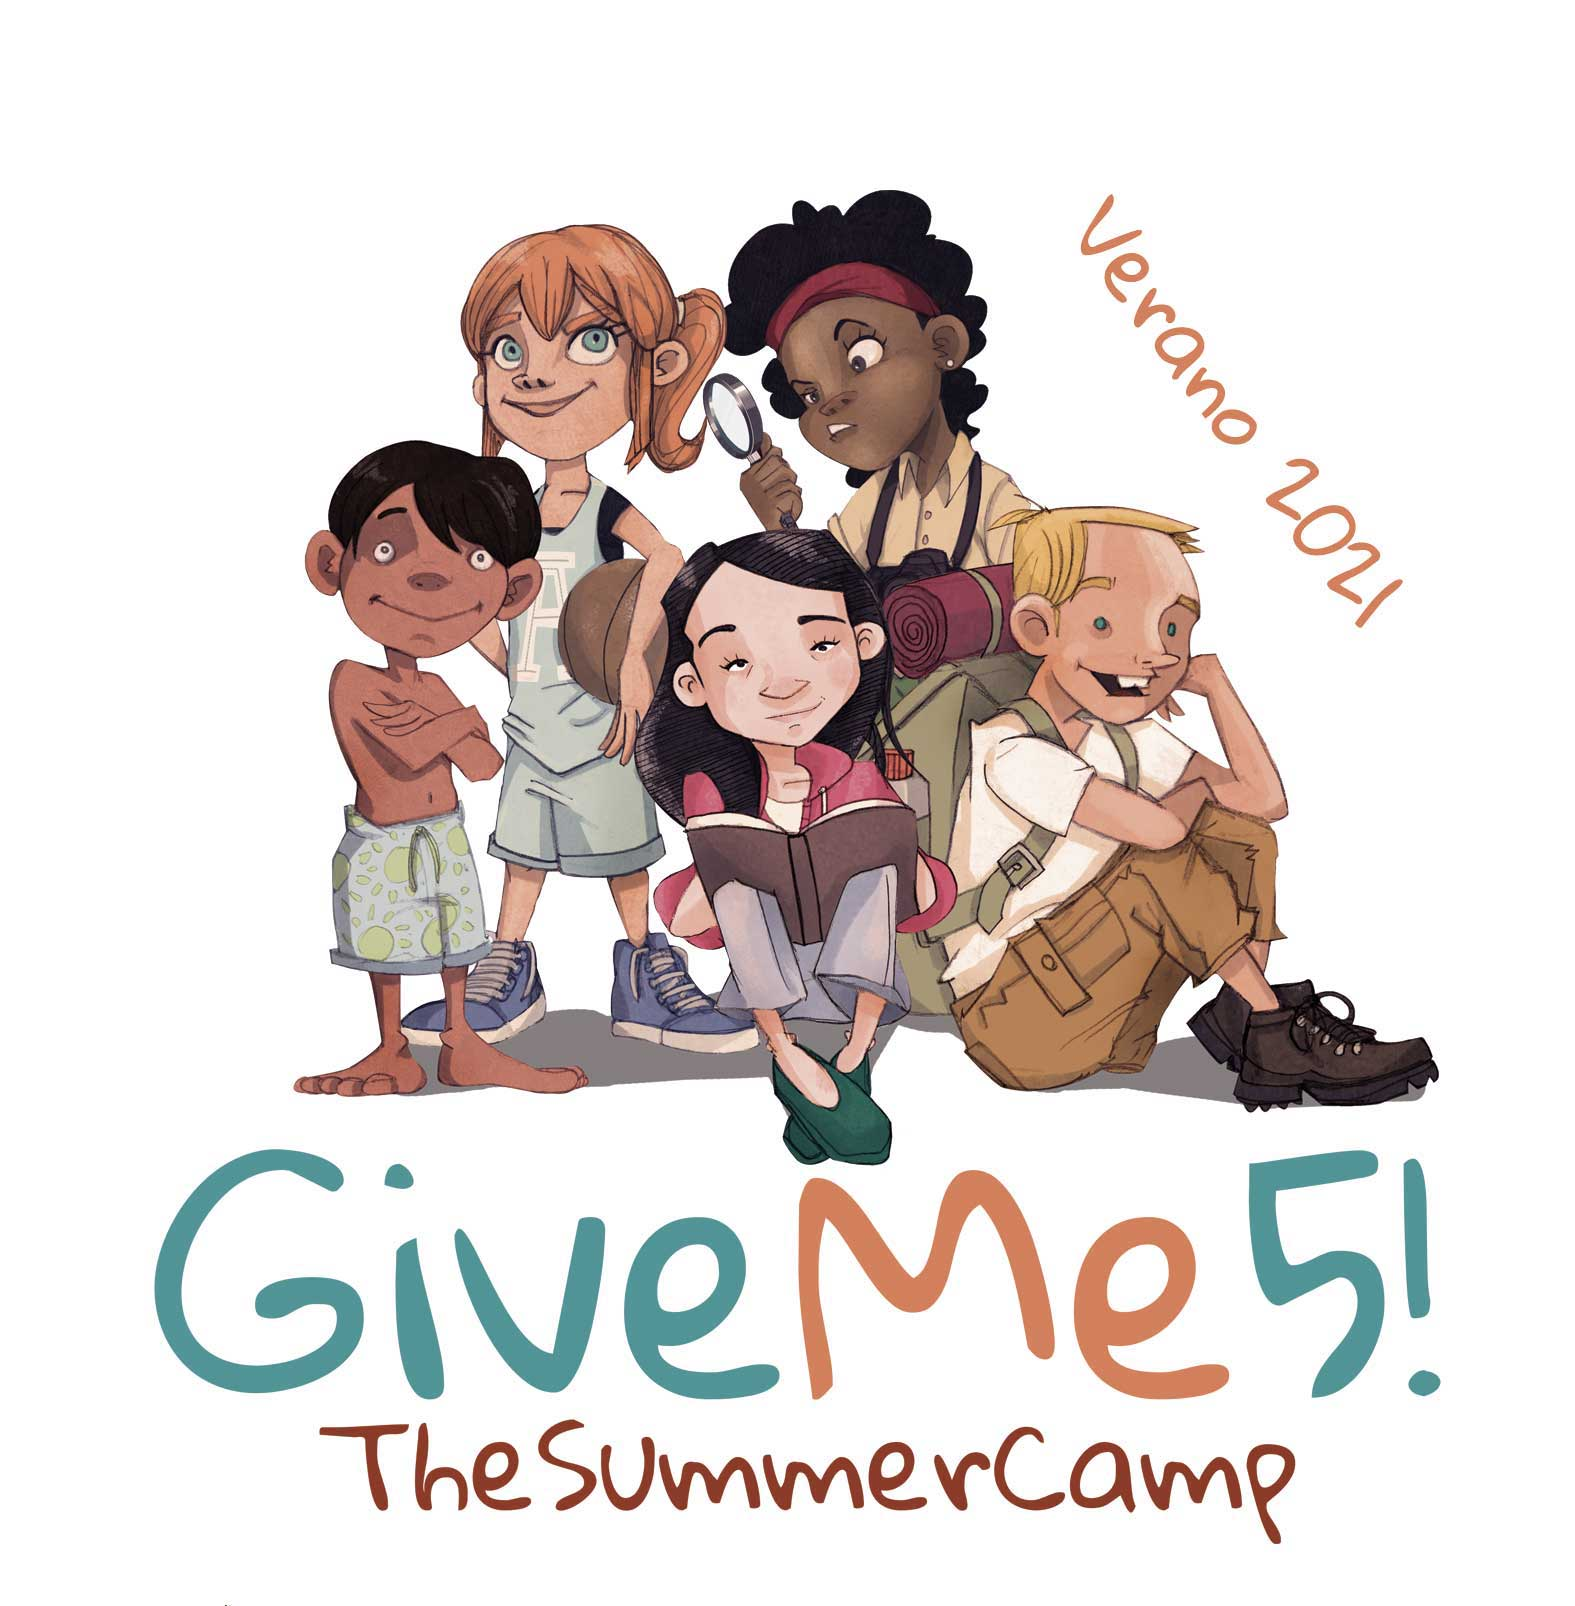 GiveMe5! The summer camp